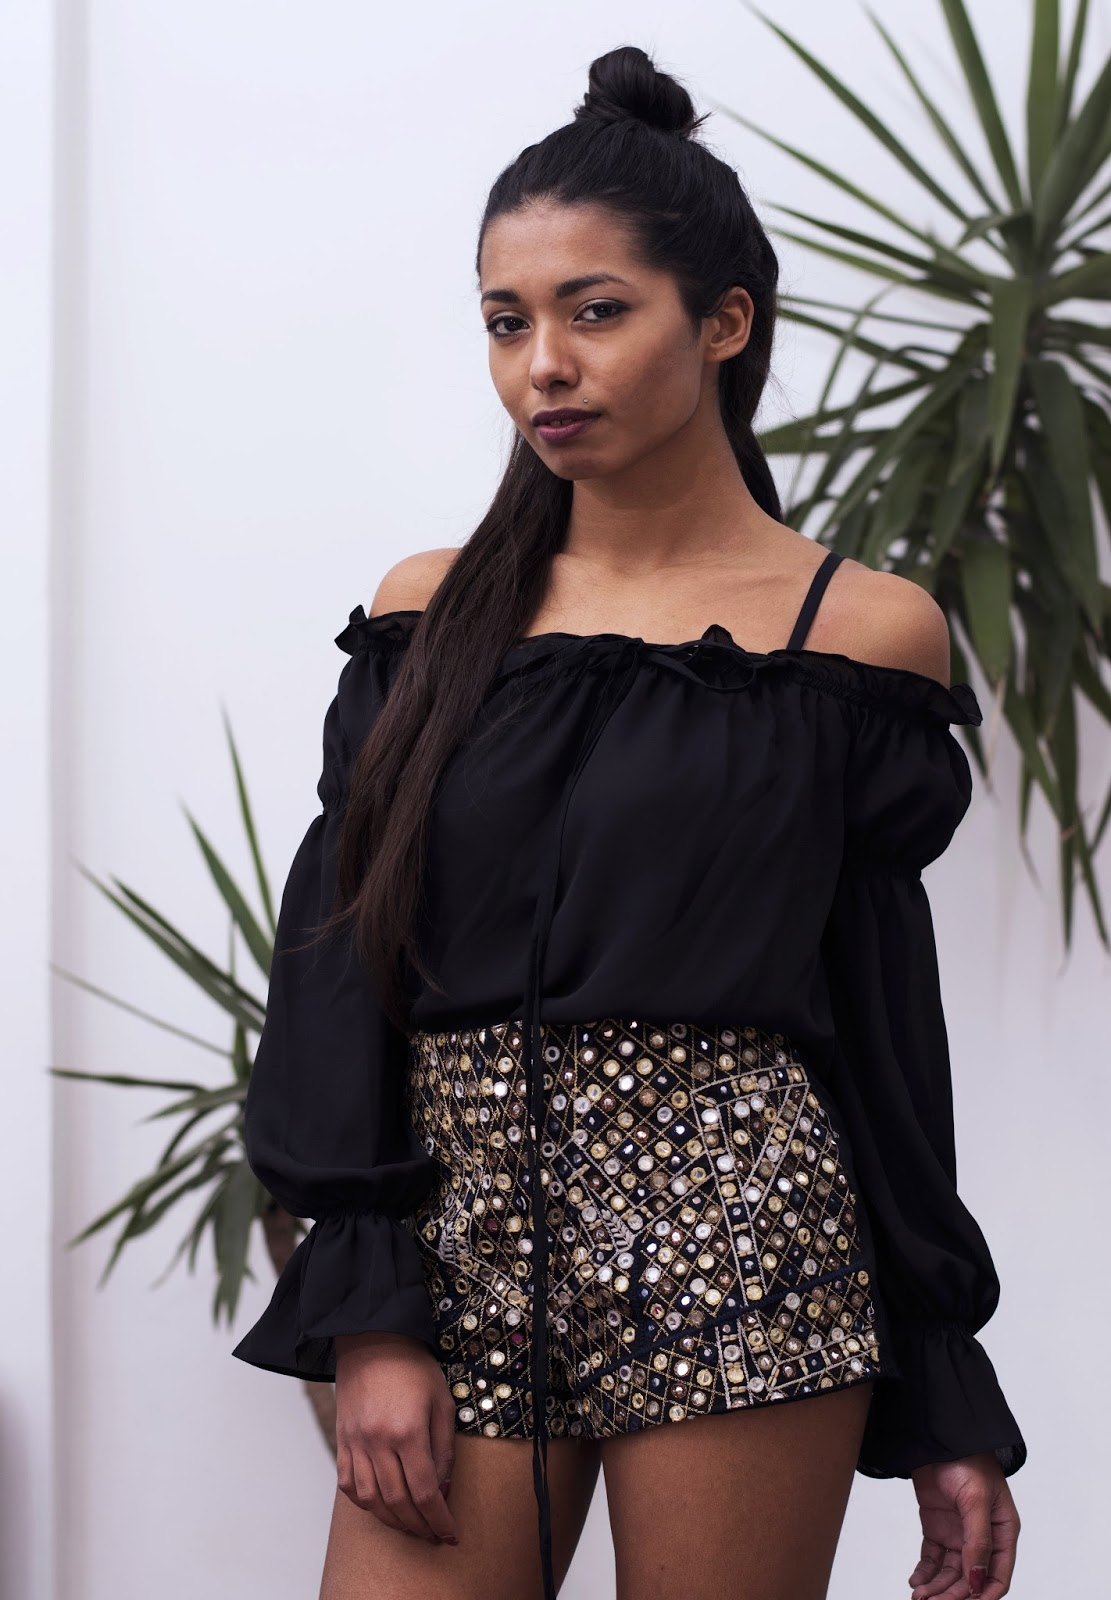 9 BLACK TOPS TO WEAR WITH ALMOST EVERY OUTFIT